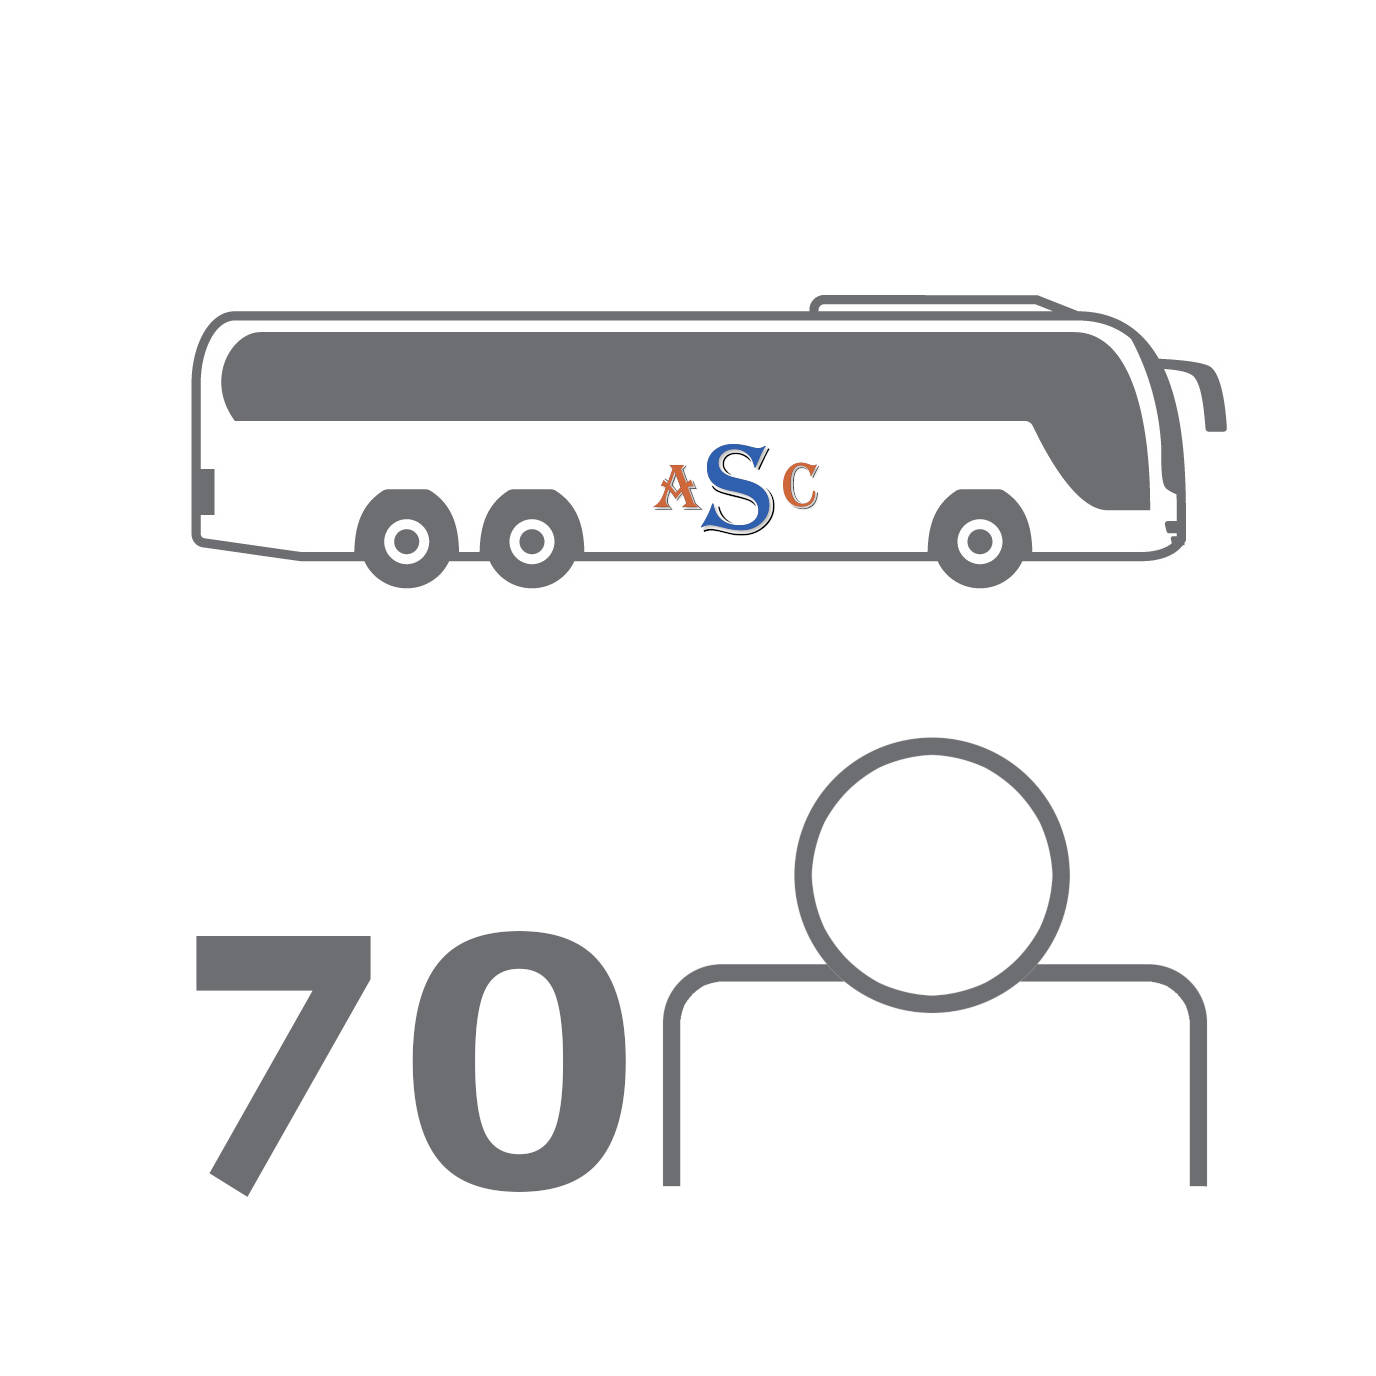 Large: 70 Seat Coach Travel: If you have a big group of people to trnasport and want to keep them all together, our 70 seater coach is the perfect option.